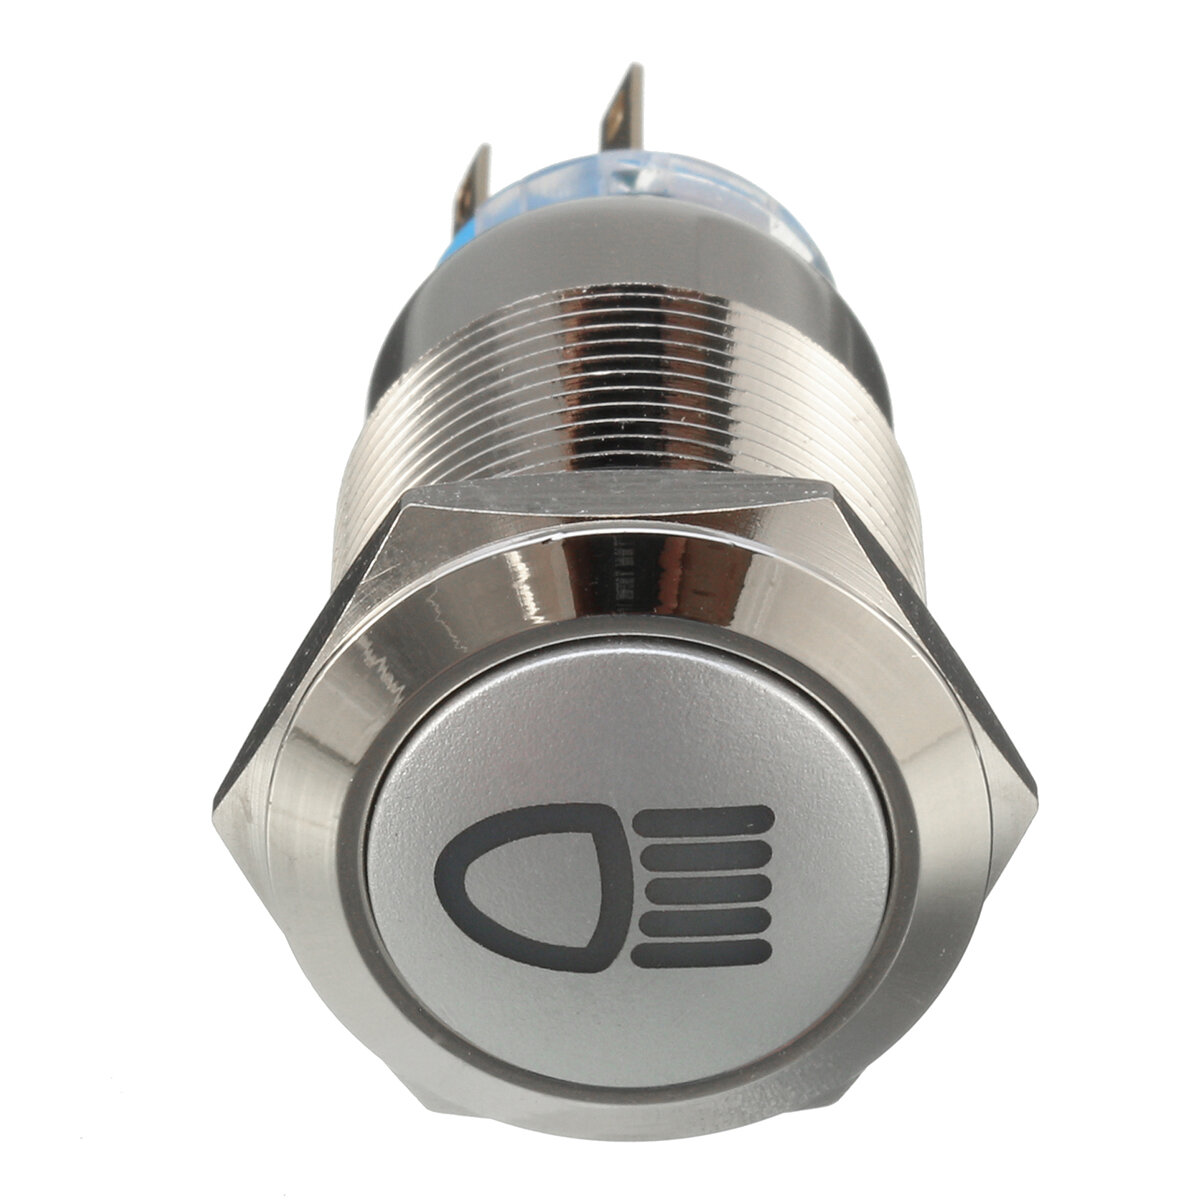 12v 19mm Silver Metal Led Push Button On Off Latching Switch Light